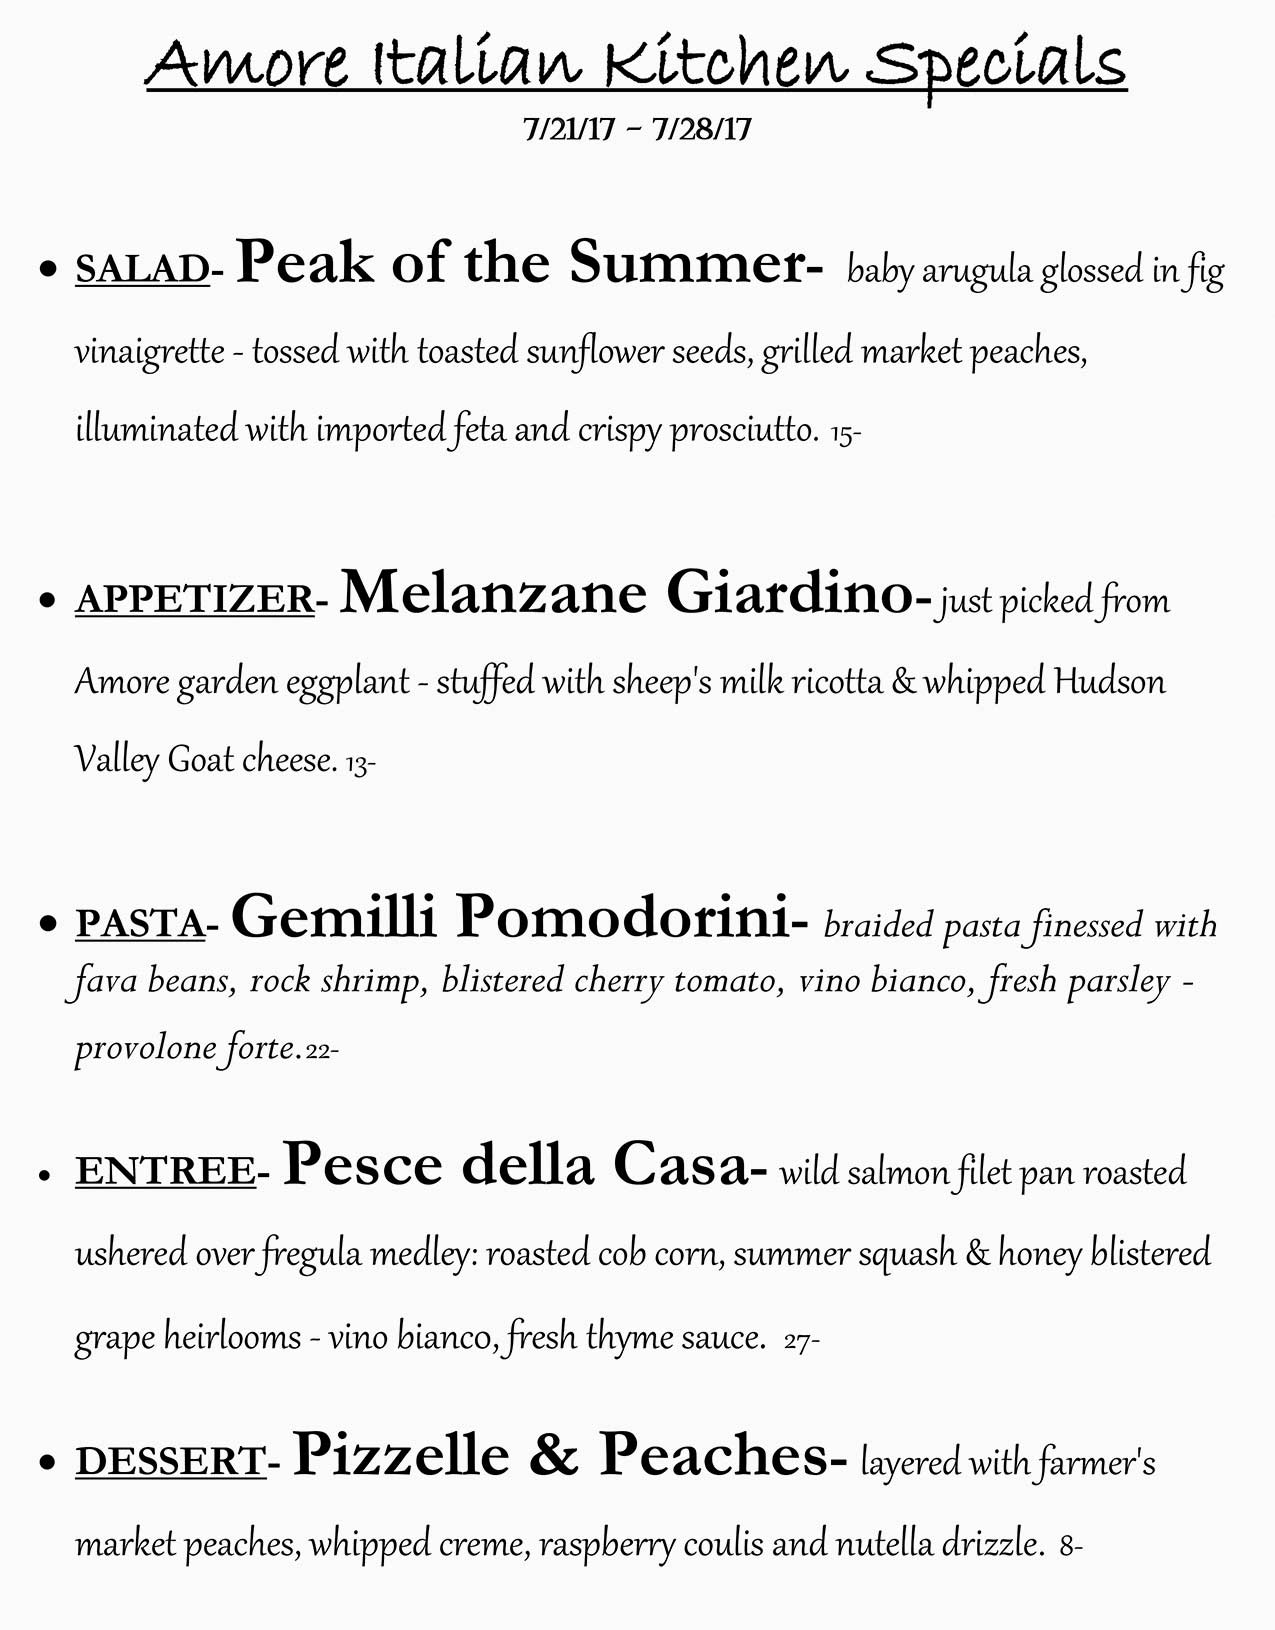 Amore Weekly Specials from 07/21 - 07/28